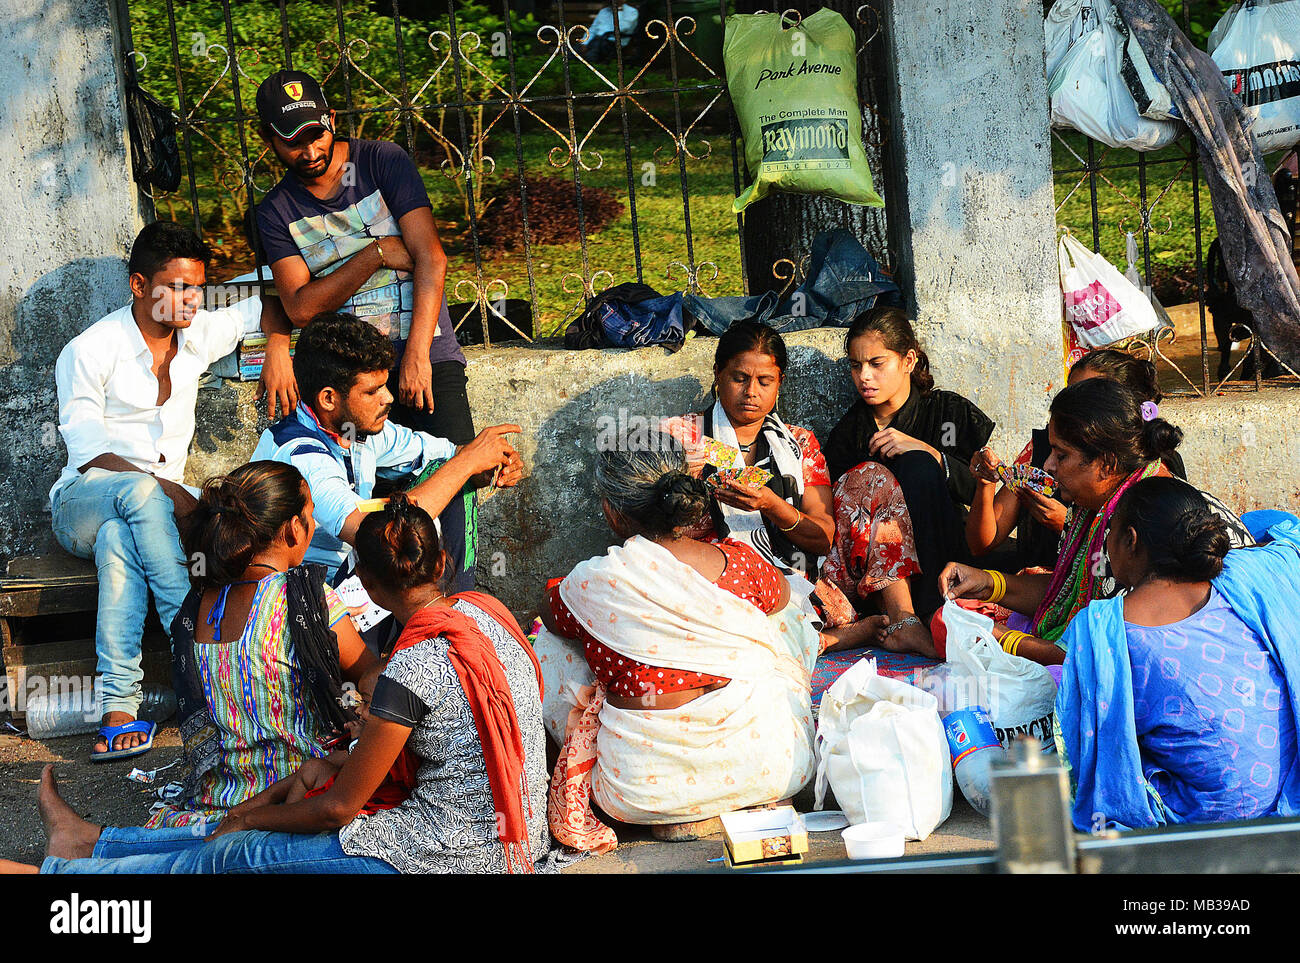 A group of people taking time out to play cards and socialise on a city street, Mumbai, India - Stock Image